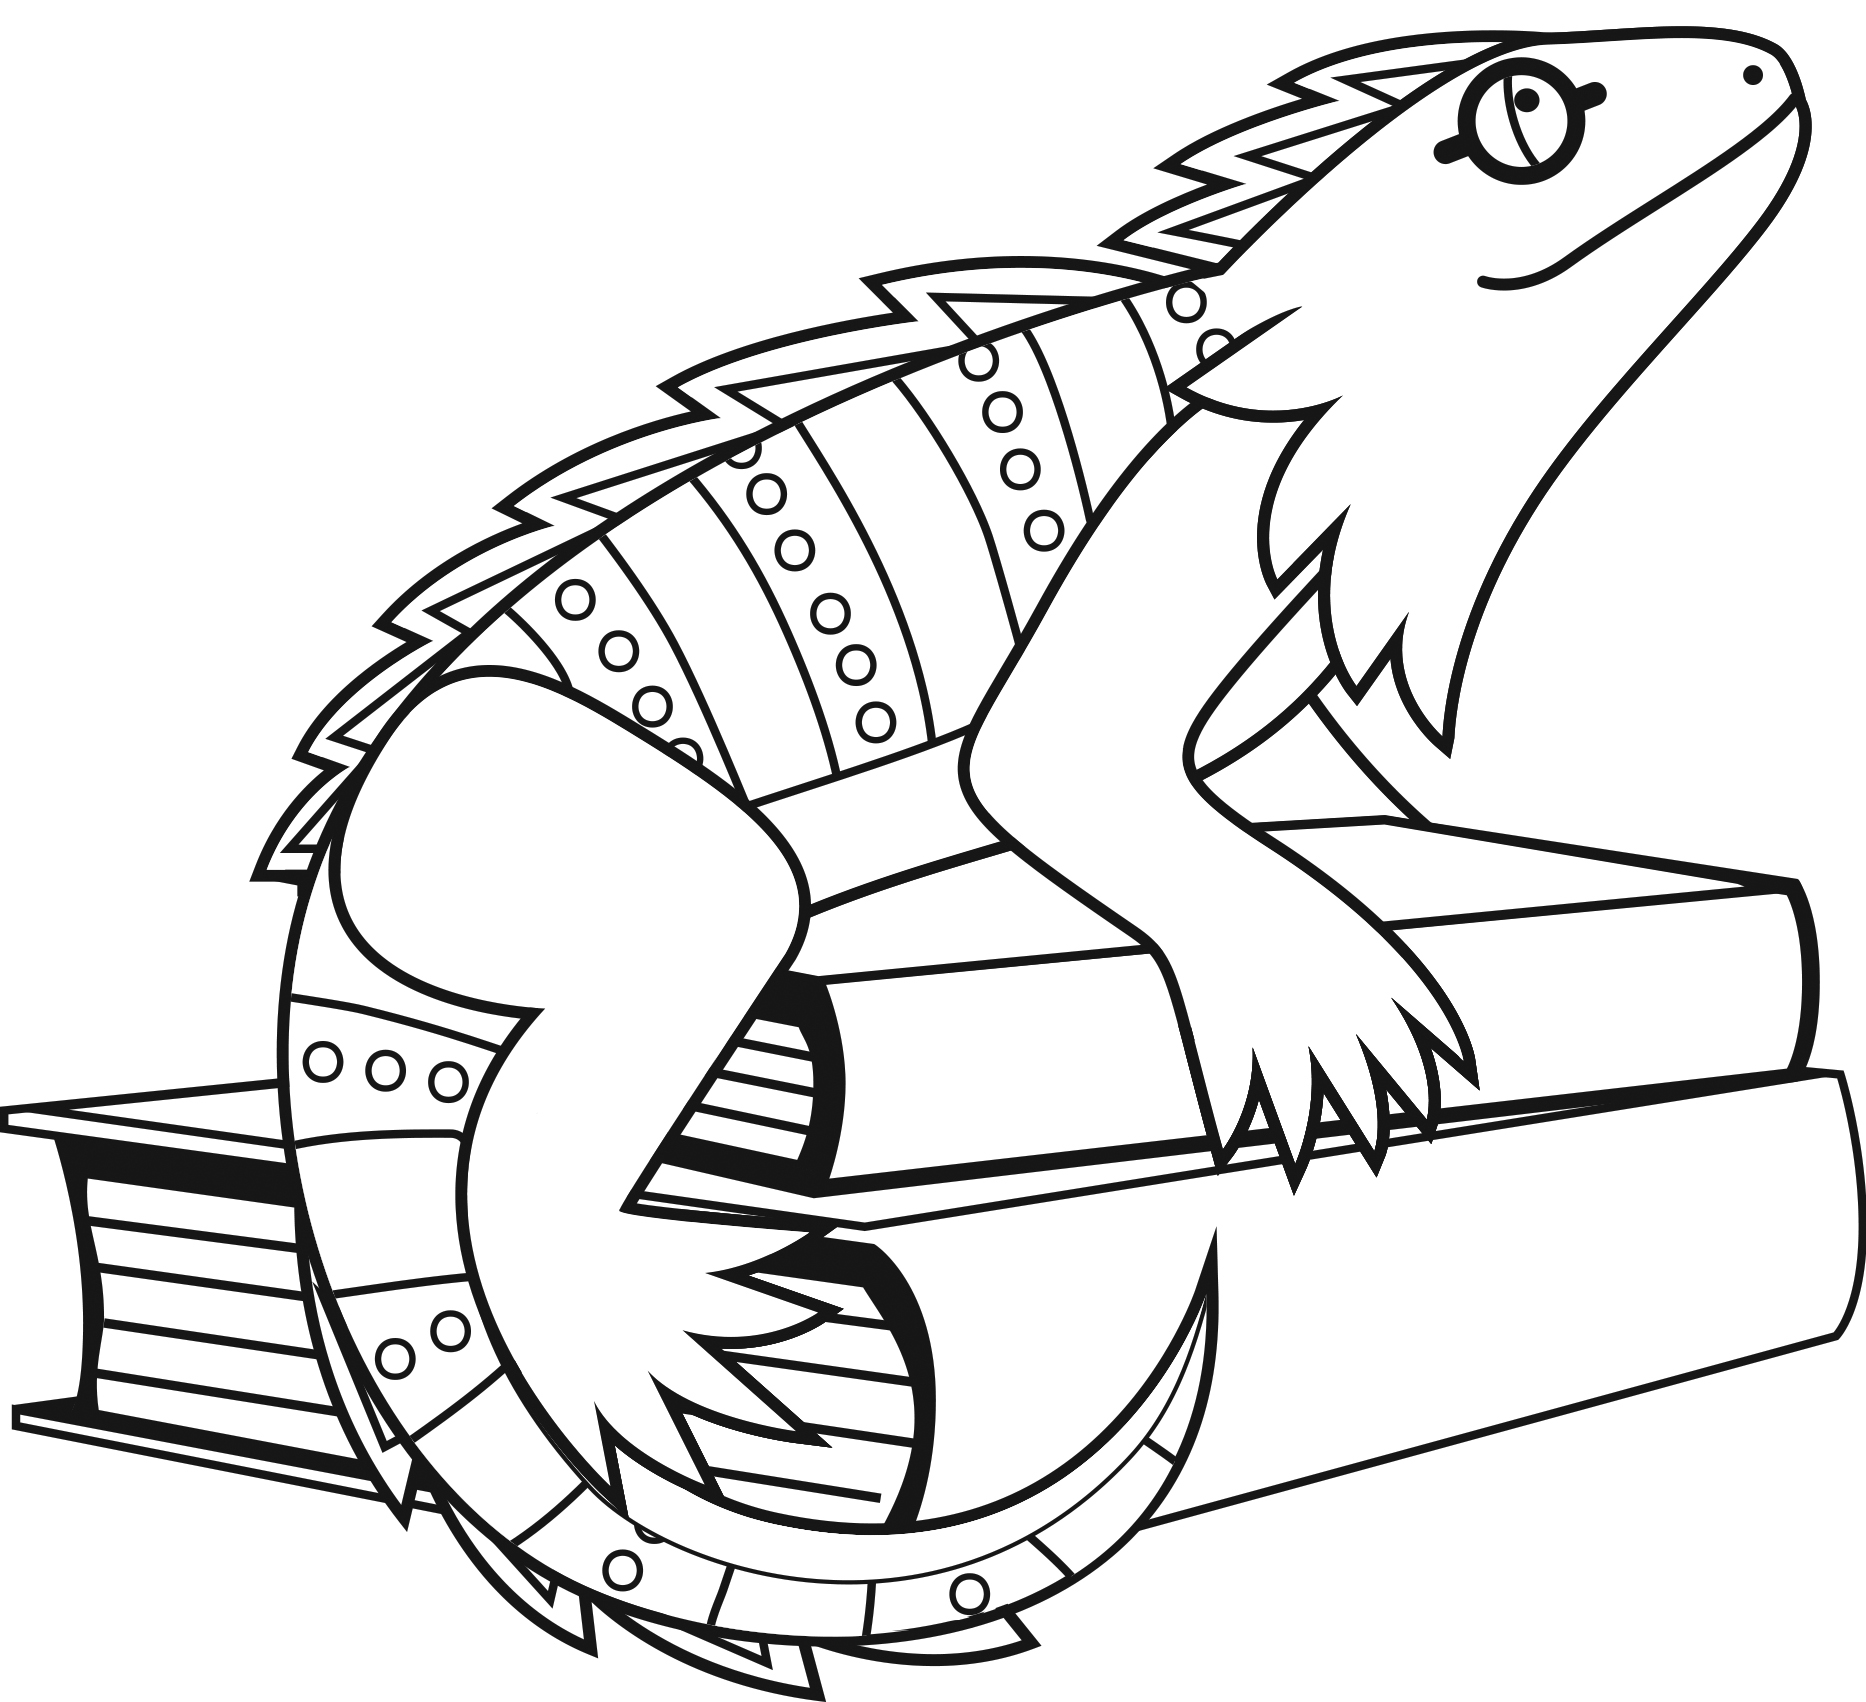 iguana coloring page 16 printable pictures of iguana page print color craft iguana page coloring